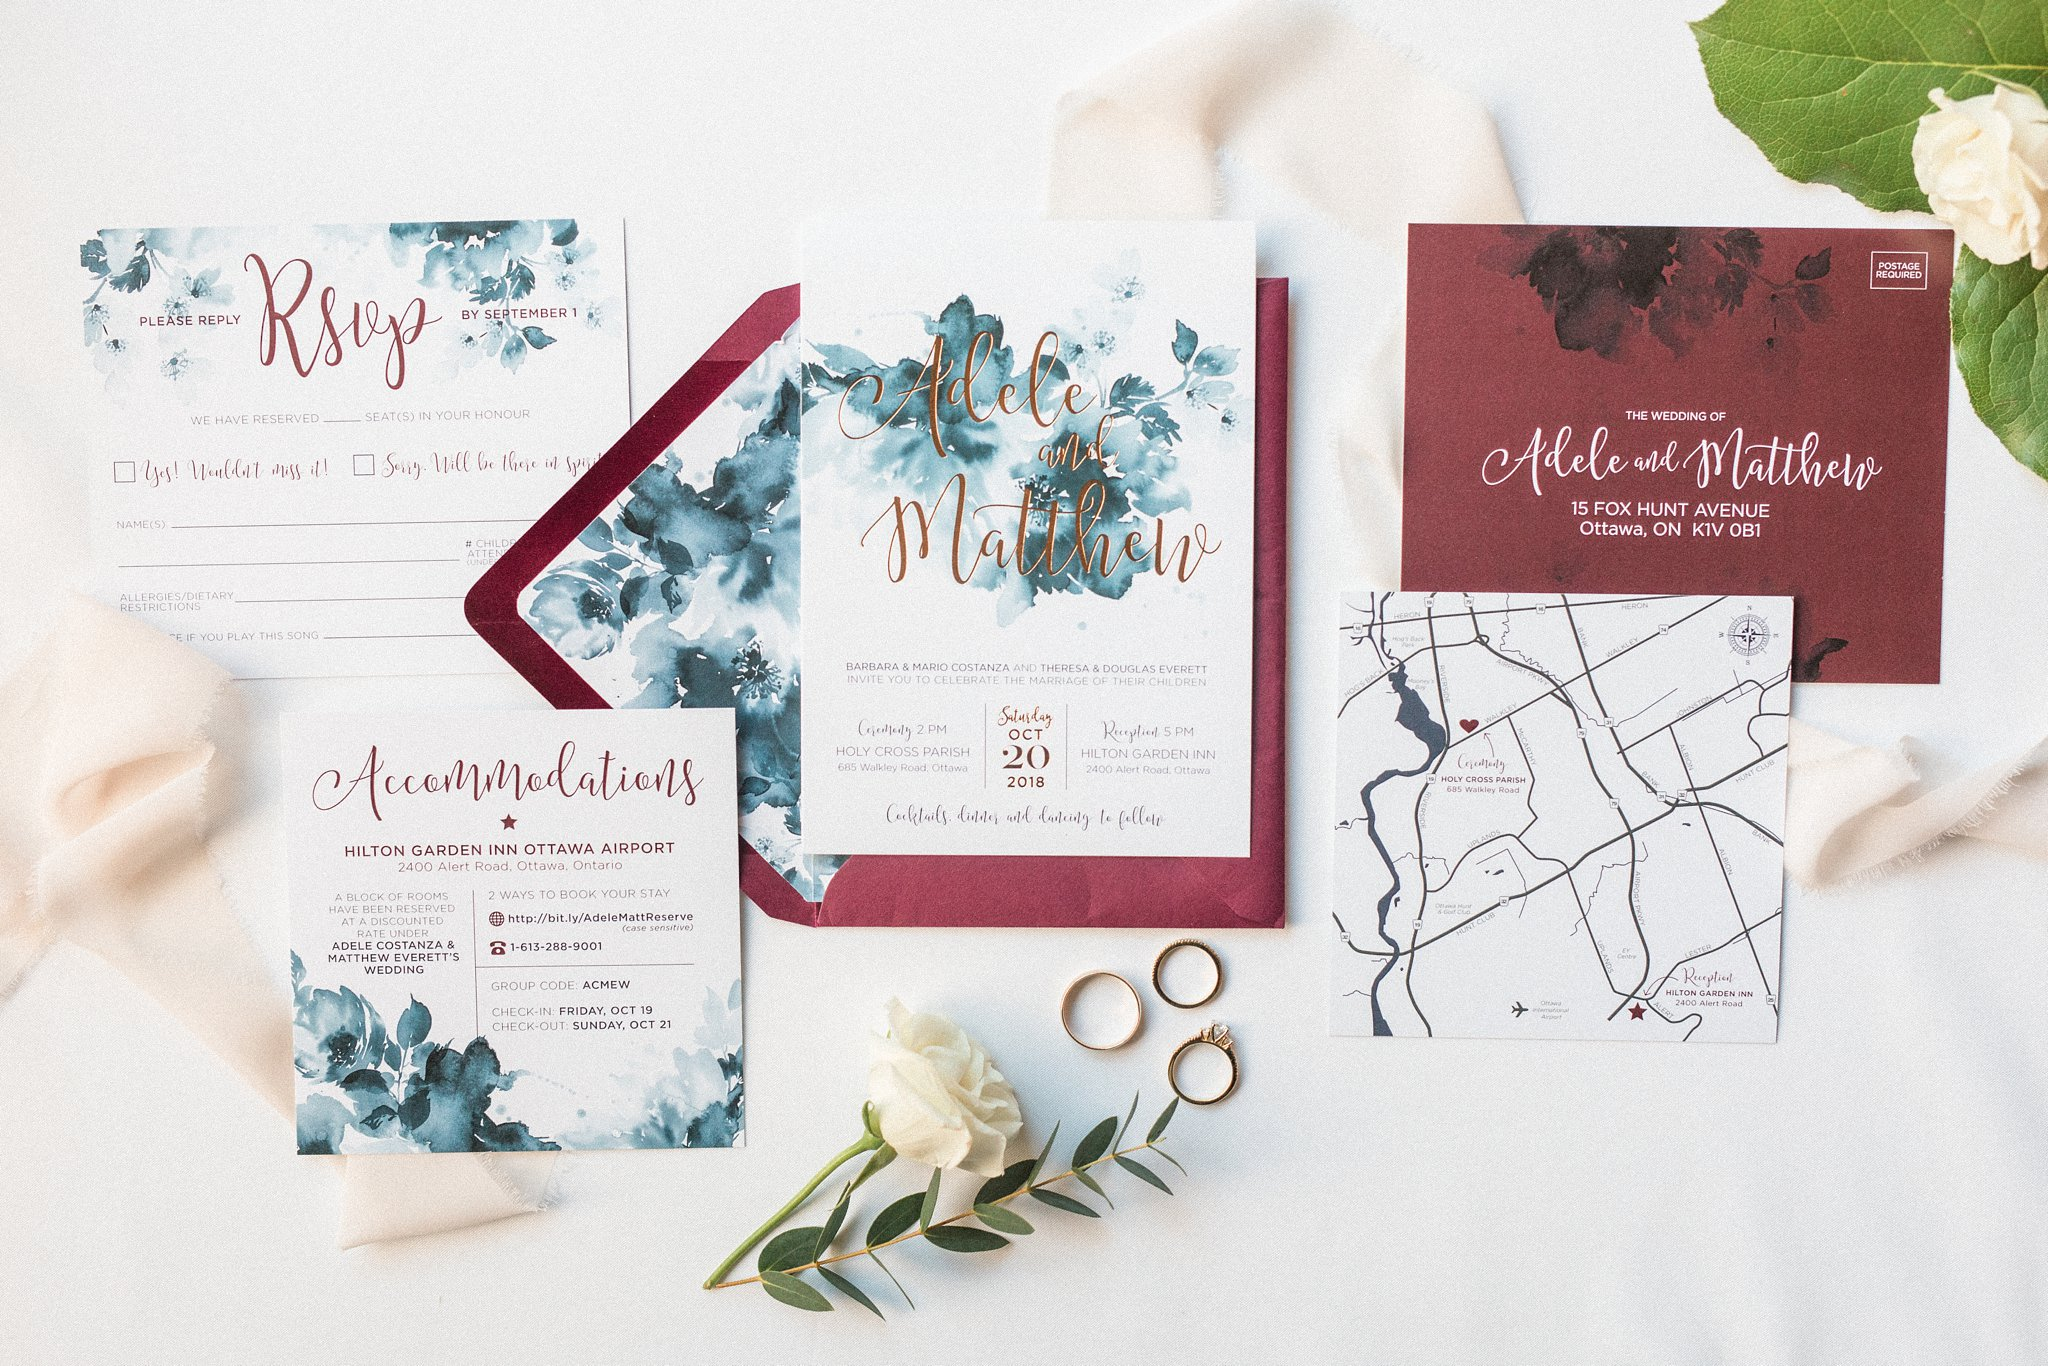 Wishtree Invitations and Design, Fall wedding invitation suite, Hilton Garden Inn Ottawa Airport Hotel Wedding